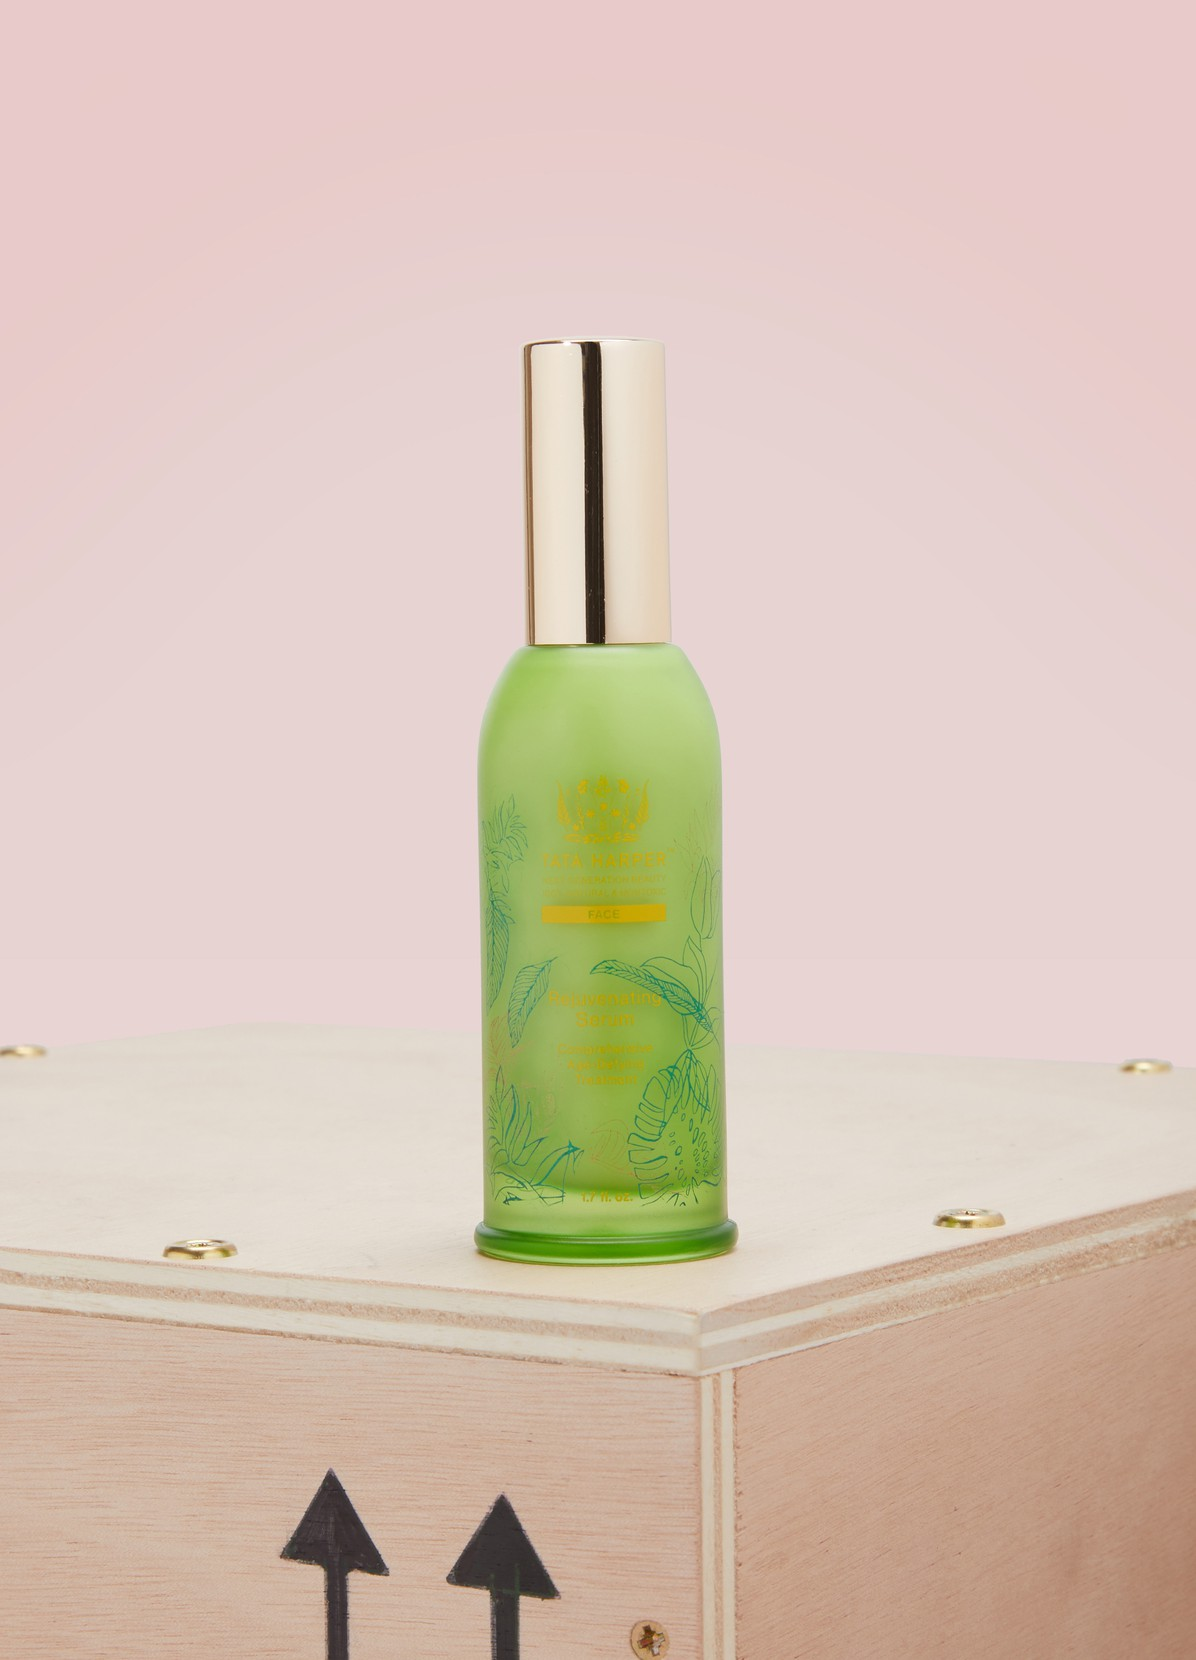 - Serenity now ....REJUVENATING SERUM / Tata Harper available exclusively for 24 Sevres